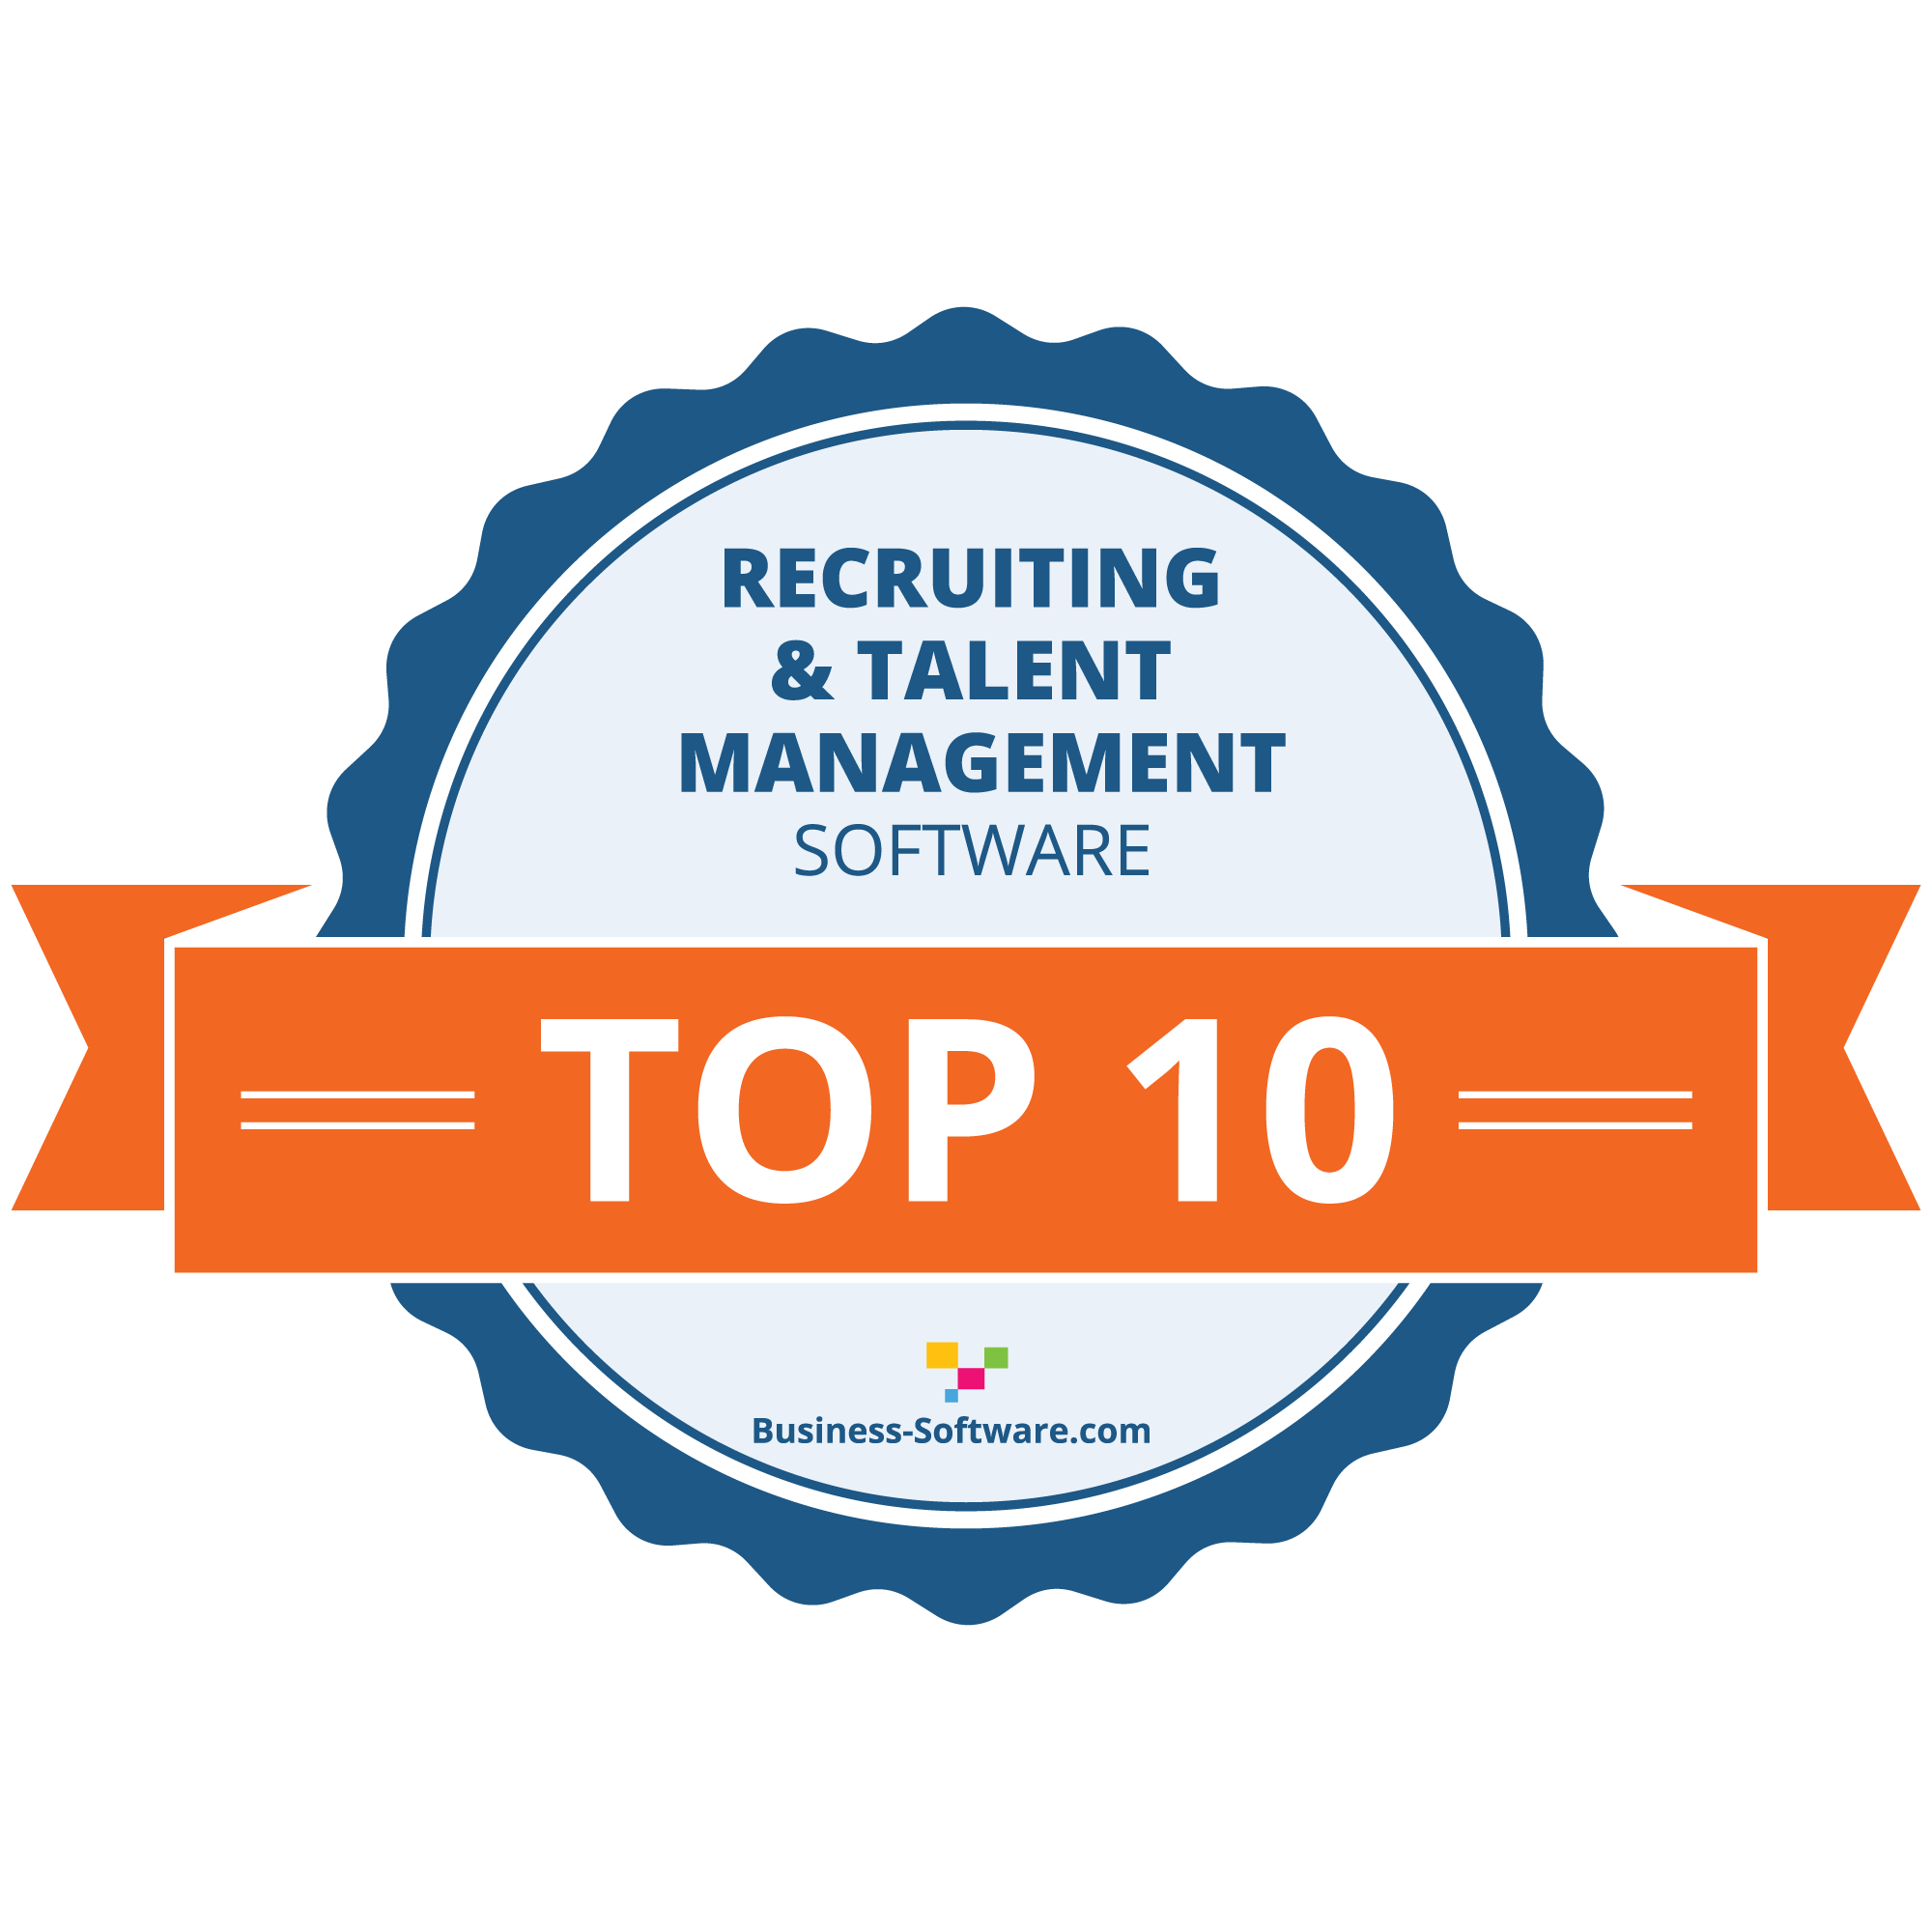 top 10 applicant tracking systems